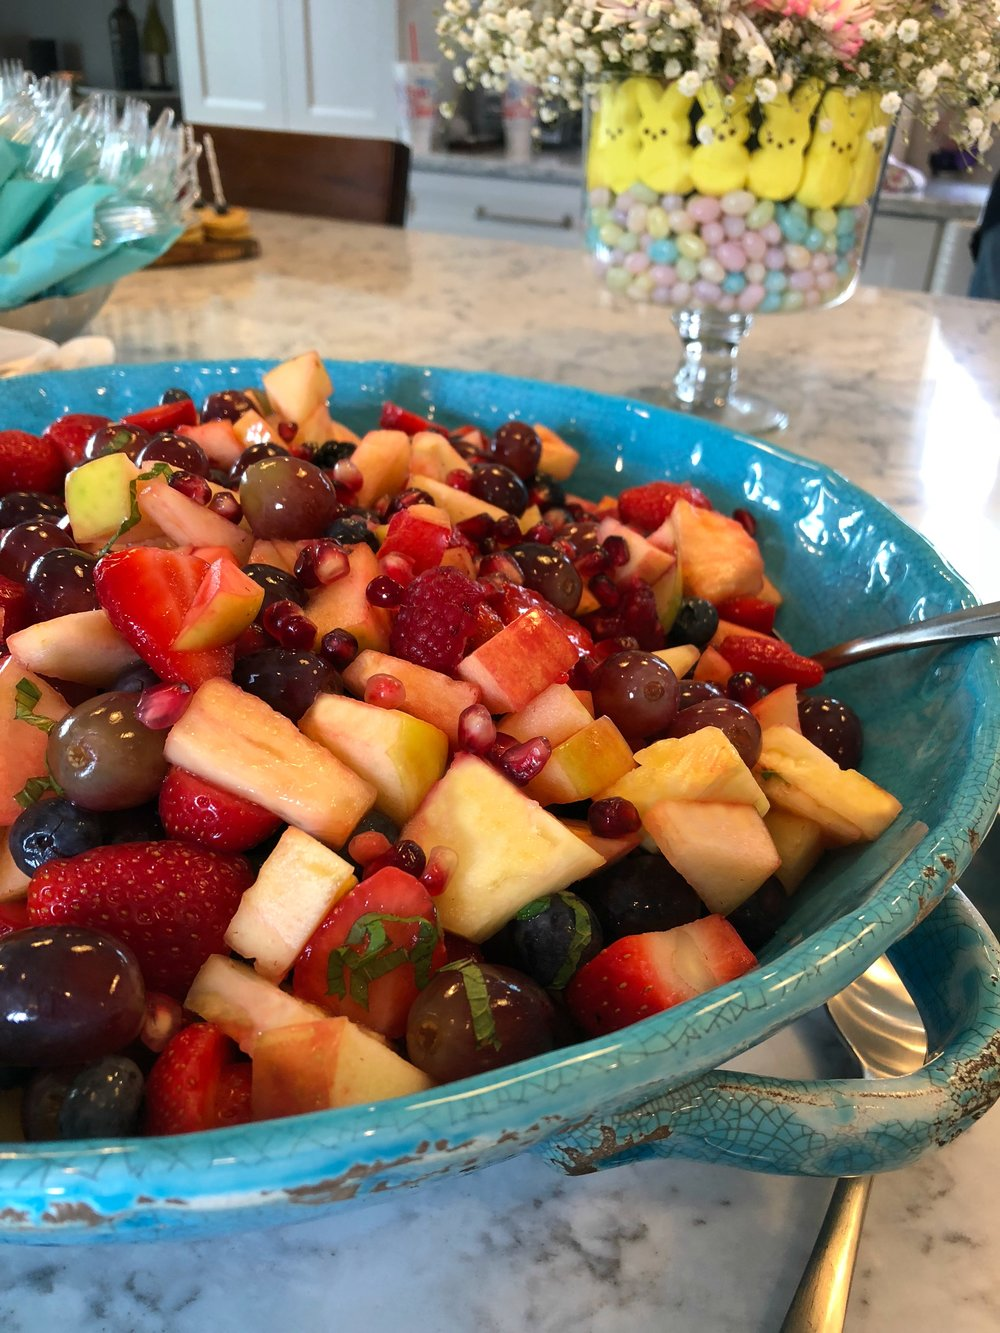 Fruit Salad at Easter Brunch - April 2018